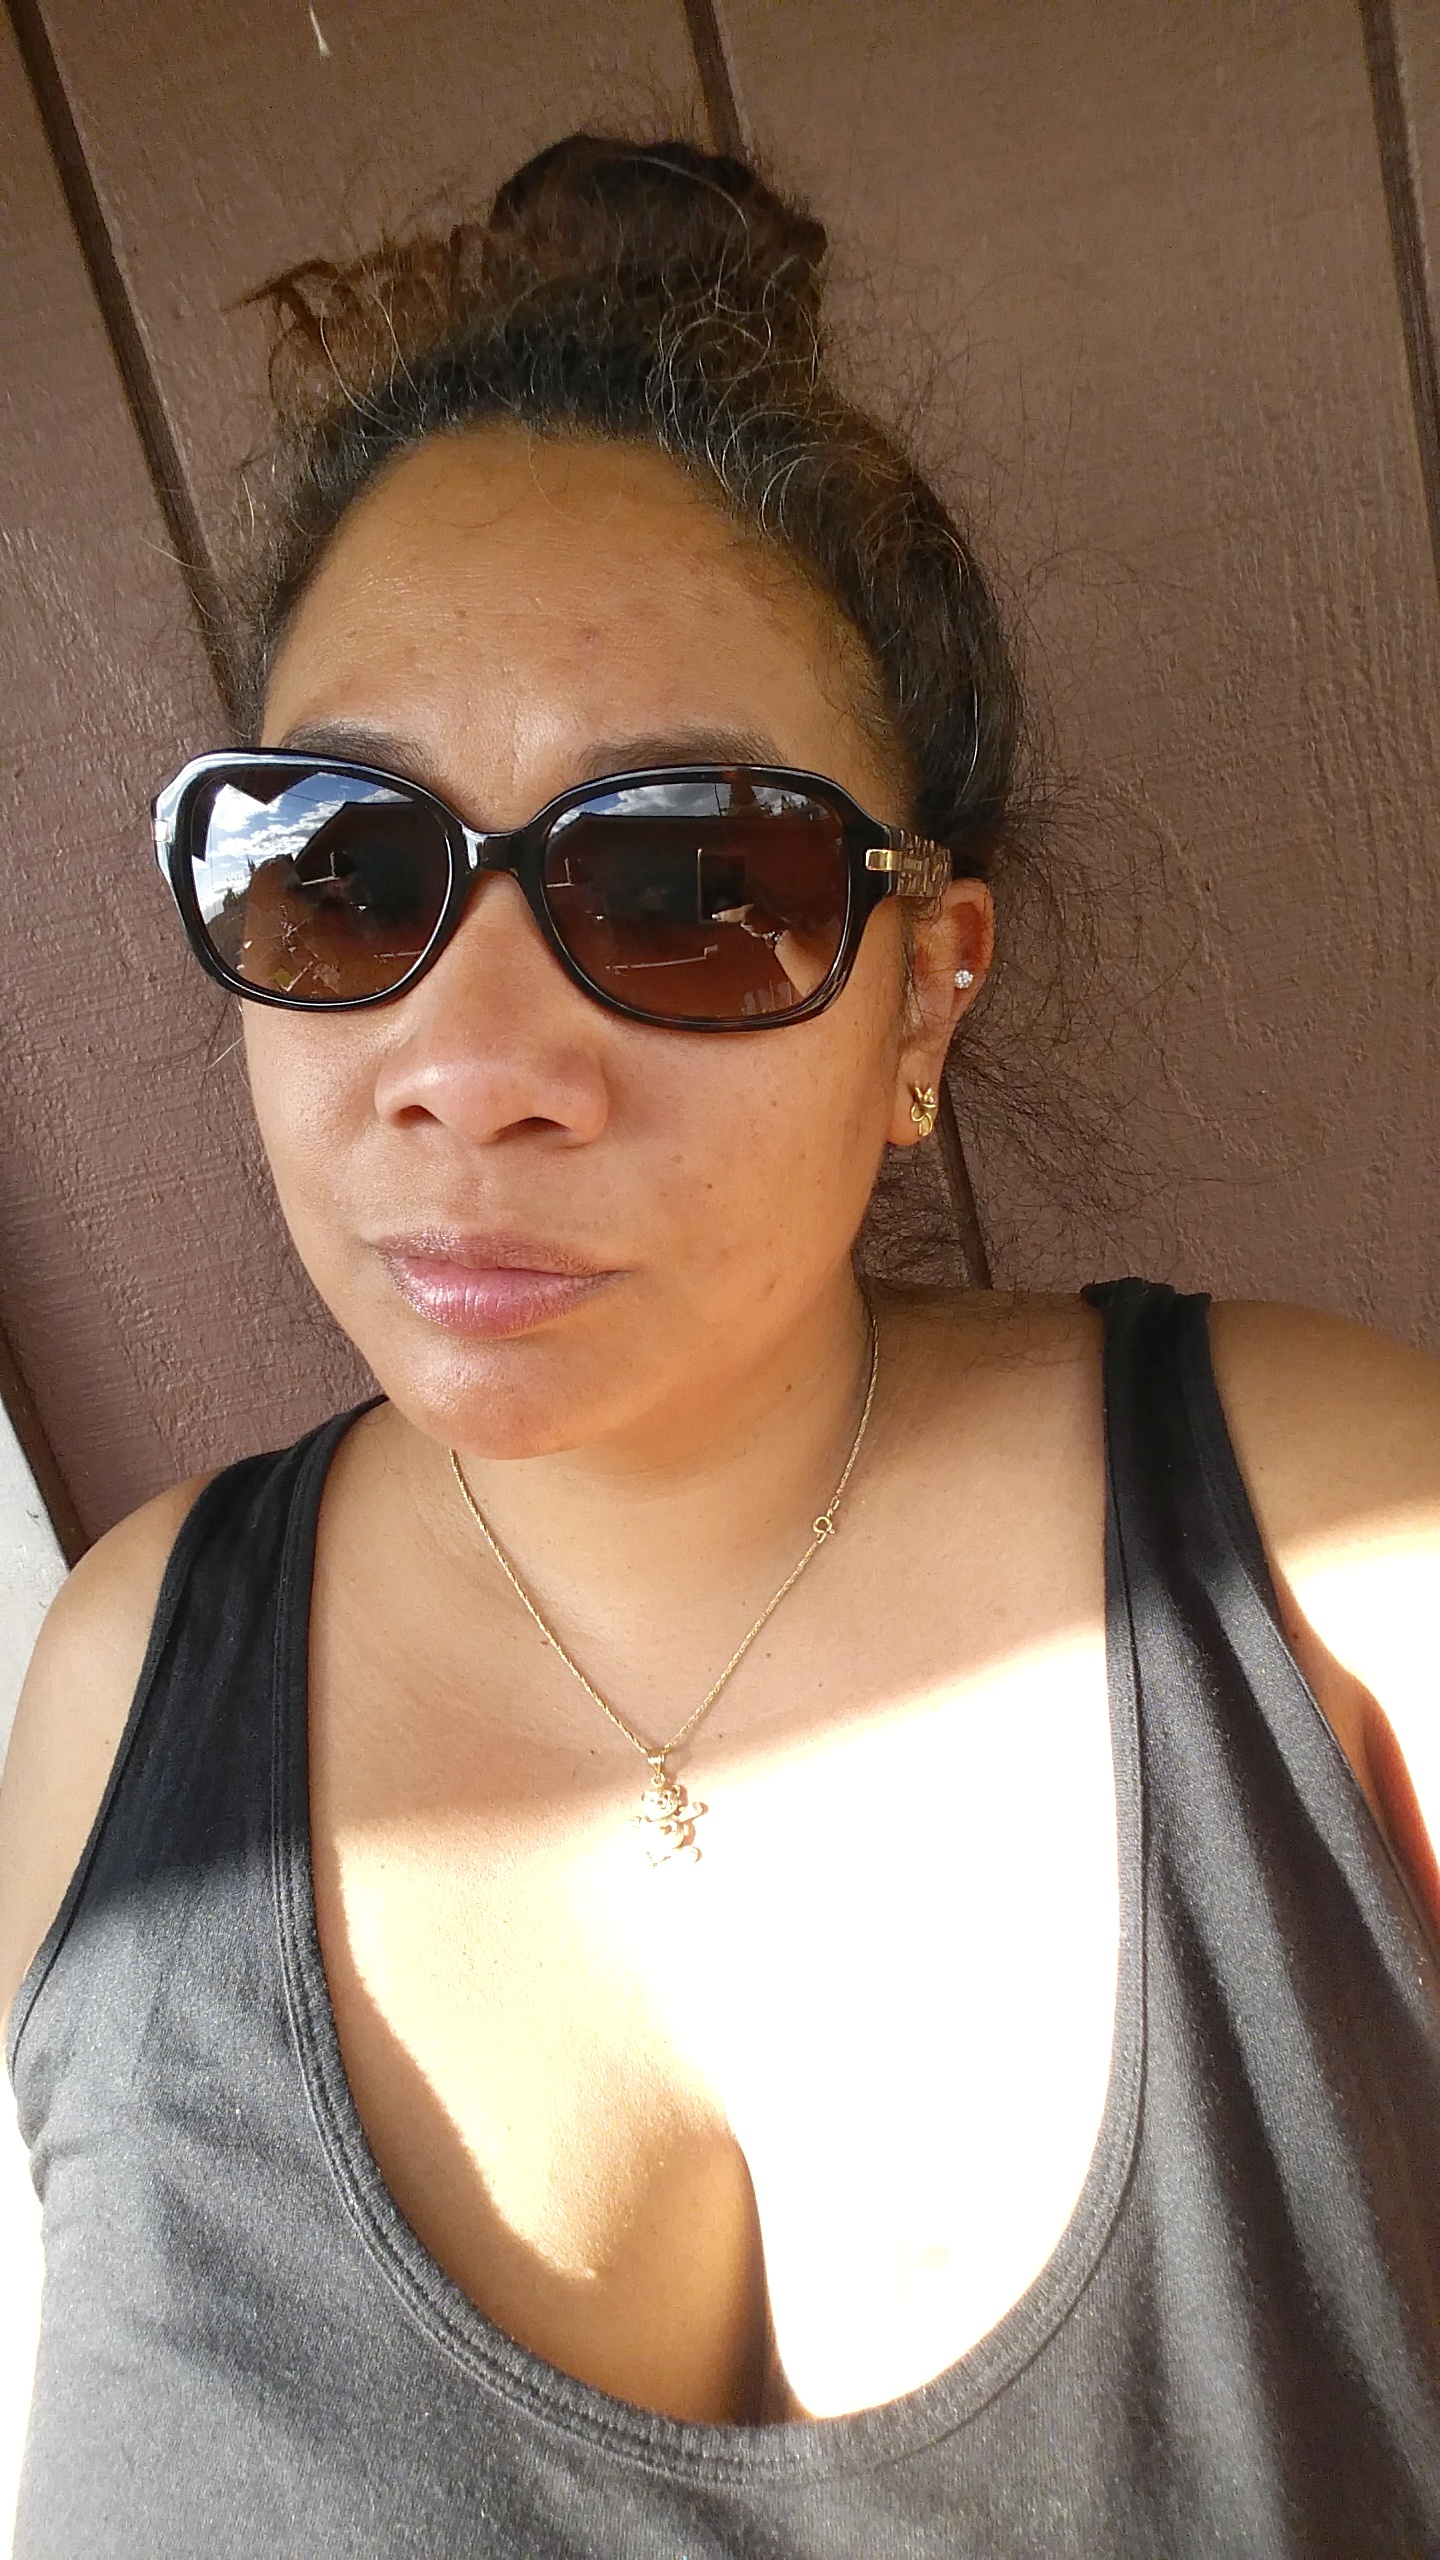 designer brands, designer sunglasses, Tory Burch, Coach, Ray-Ban, sunglasses, affordable designer sunglasses, authentic designer sunglasses, michael kors, burberry, carolina lemke, versace, glasses, prescription glasses,